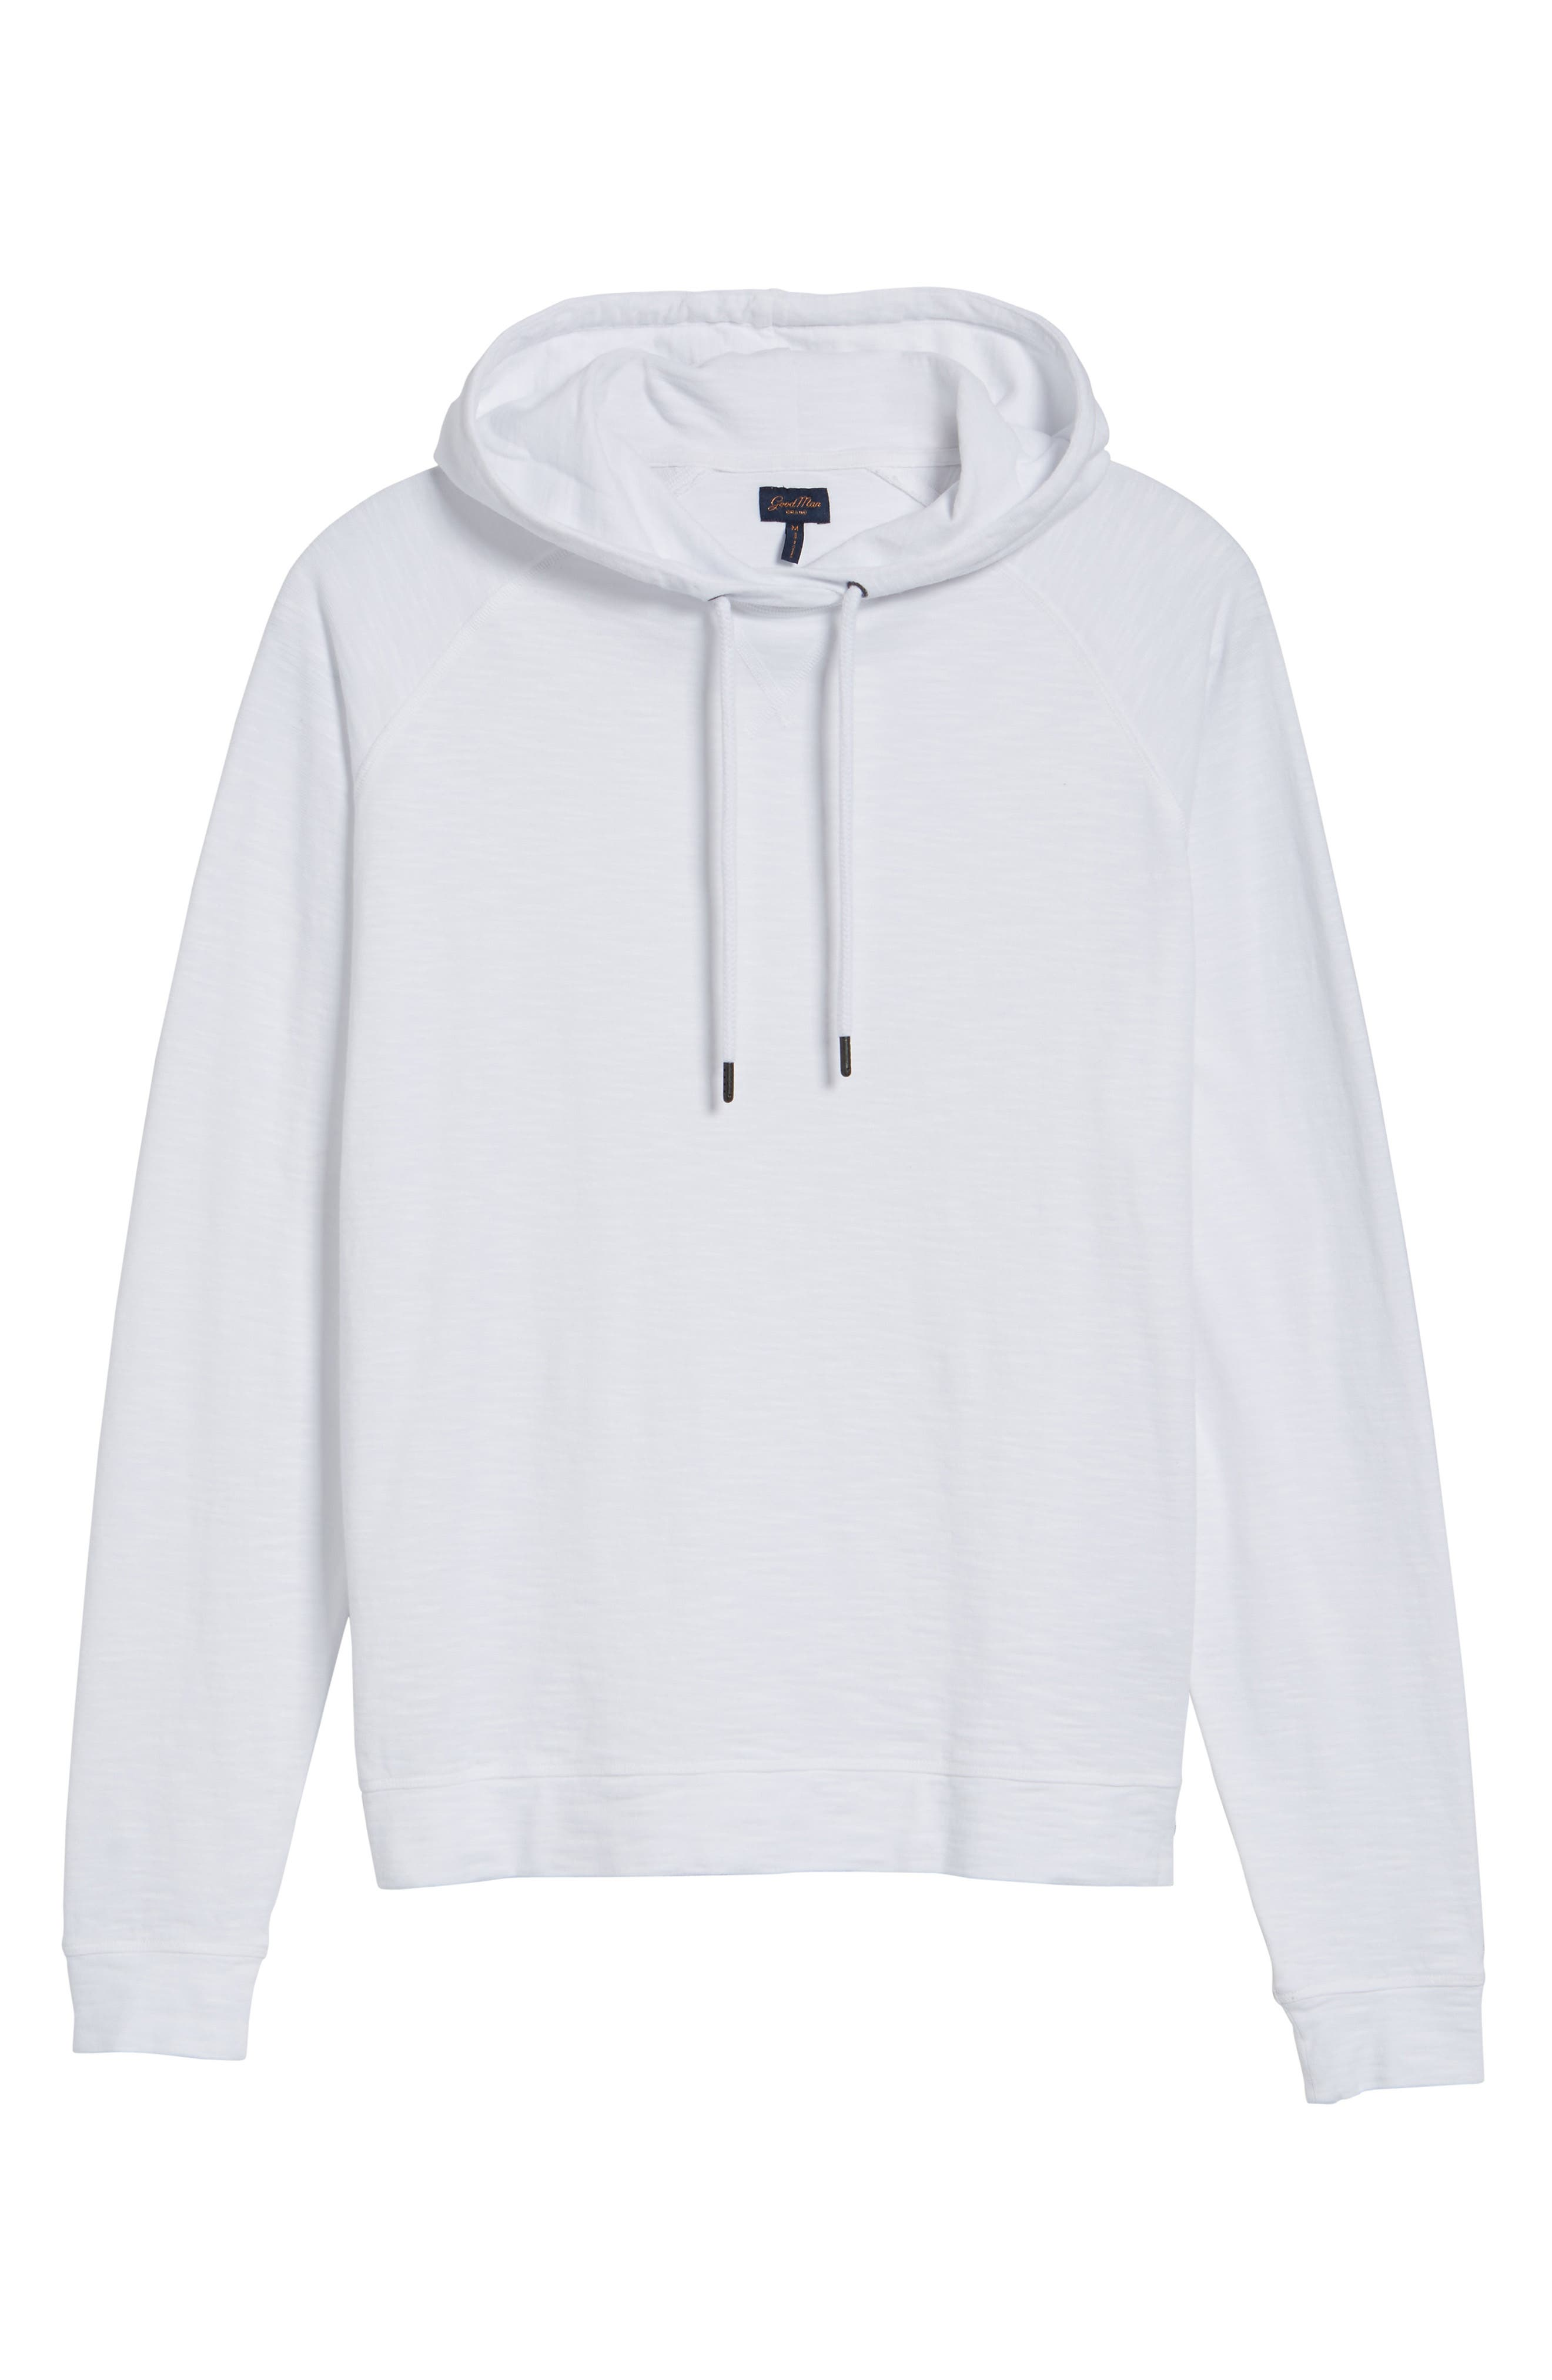 Trim Fit Pullover Hoodie,                             Alternate thumbnail 6, color,                             100